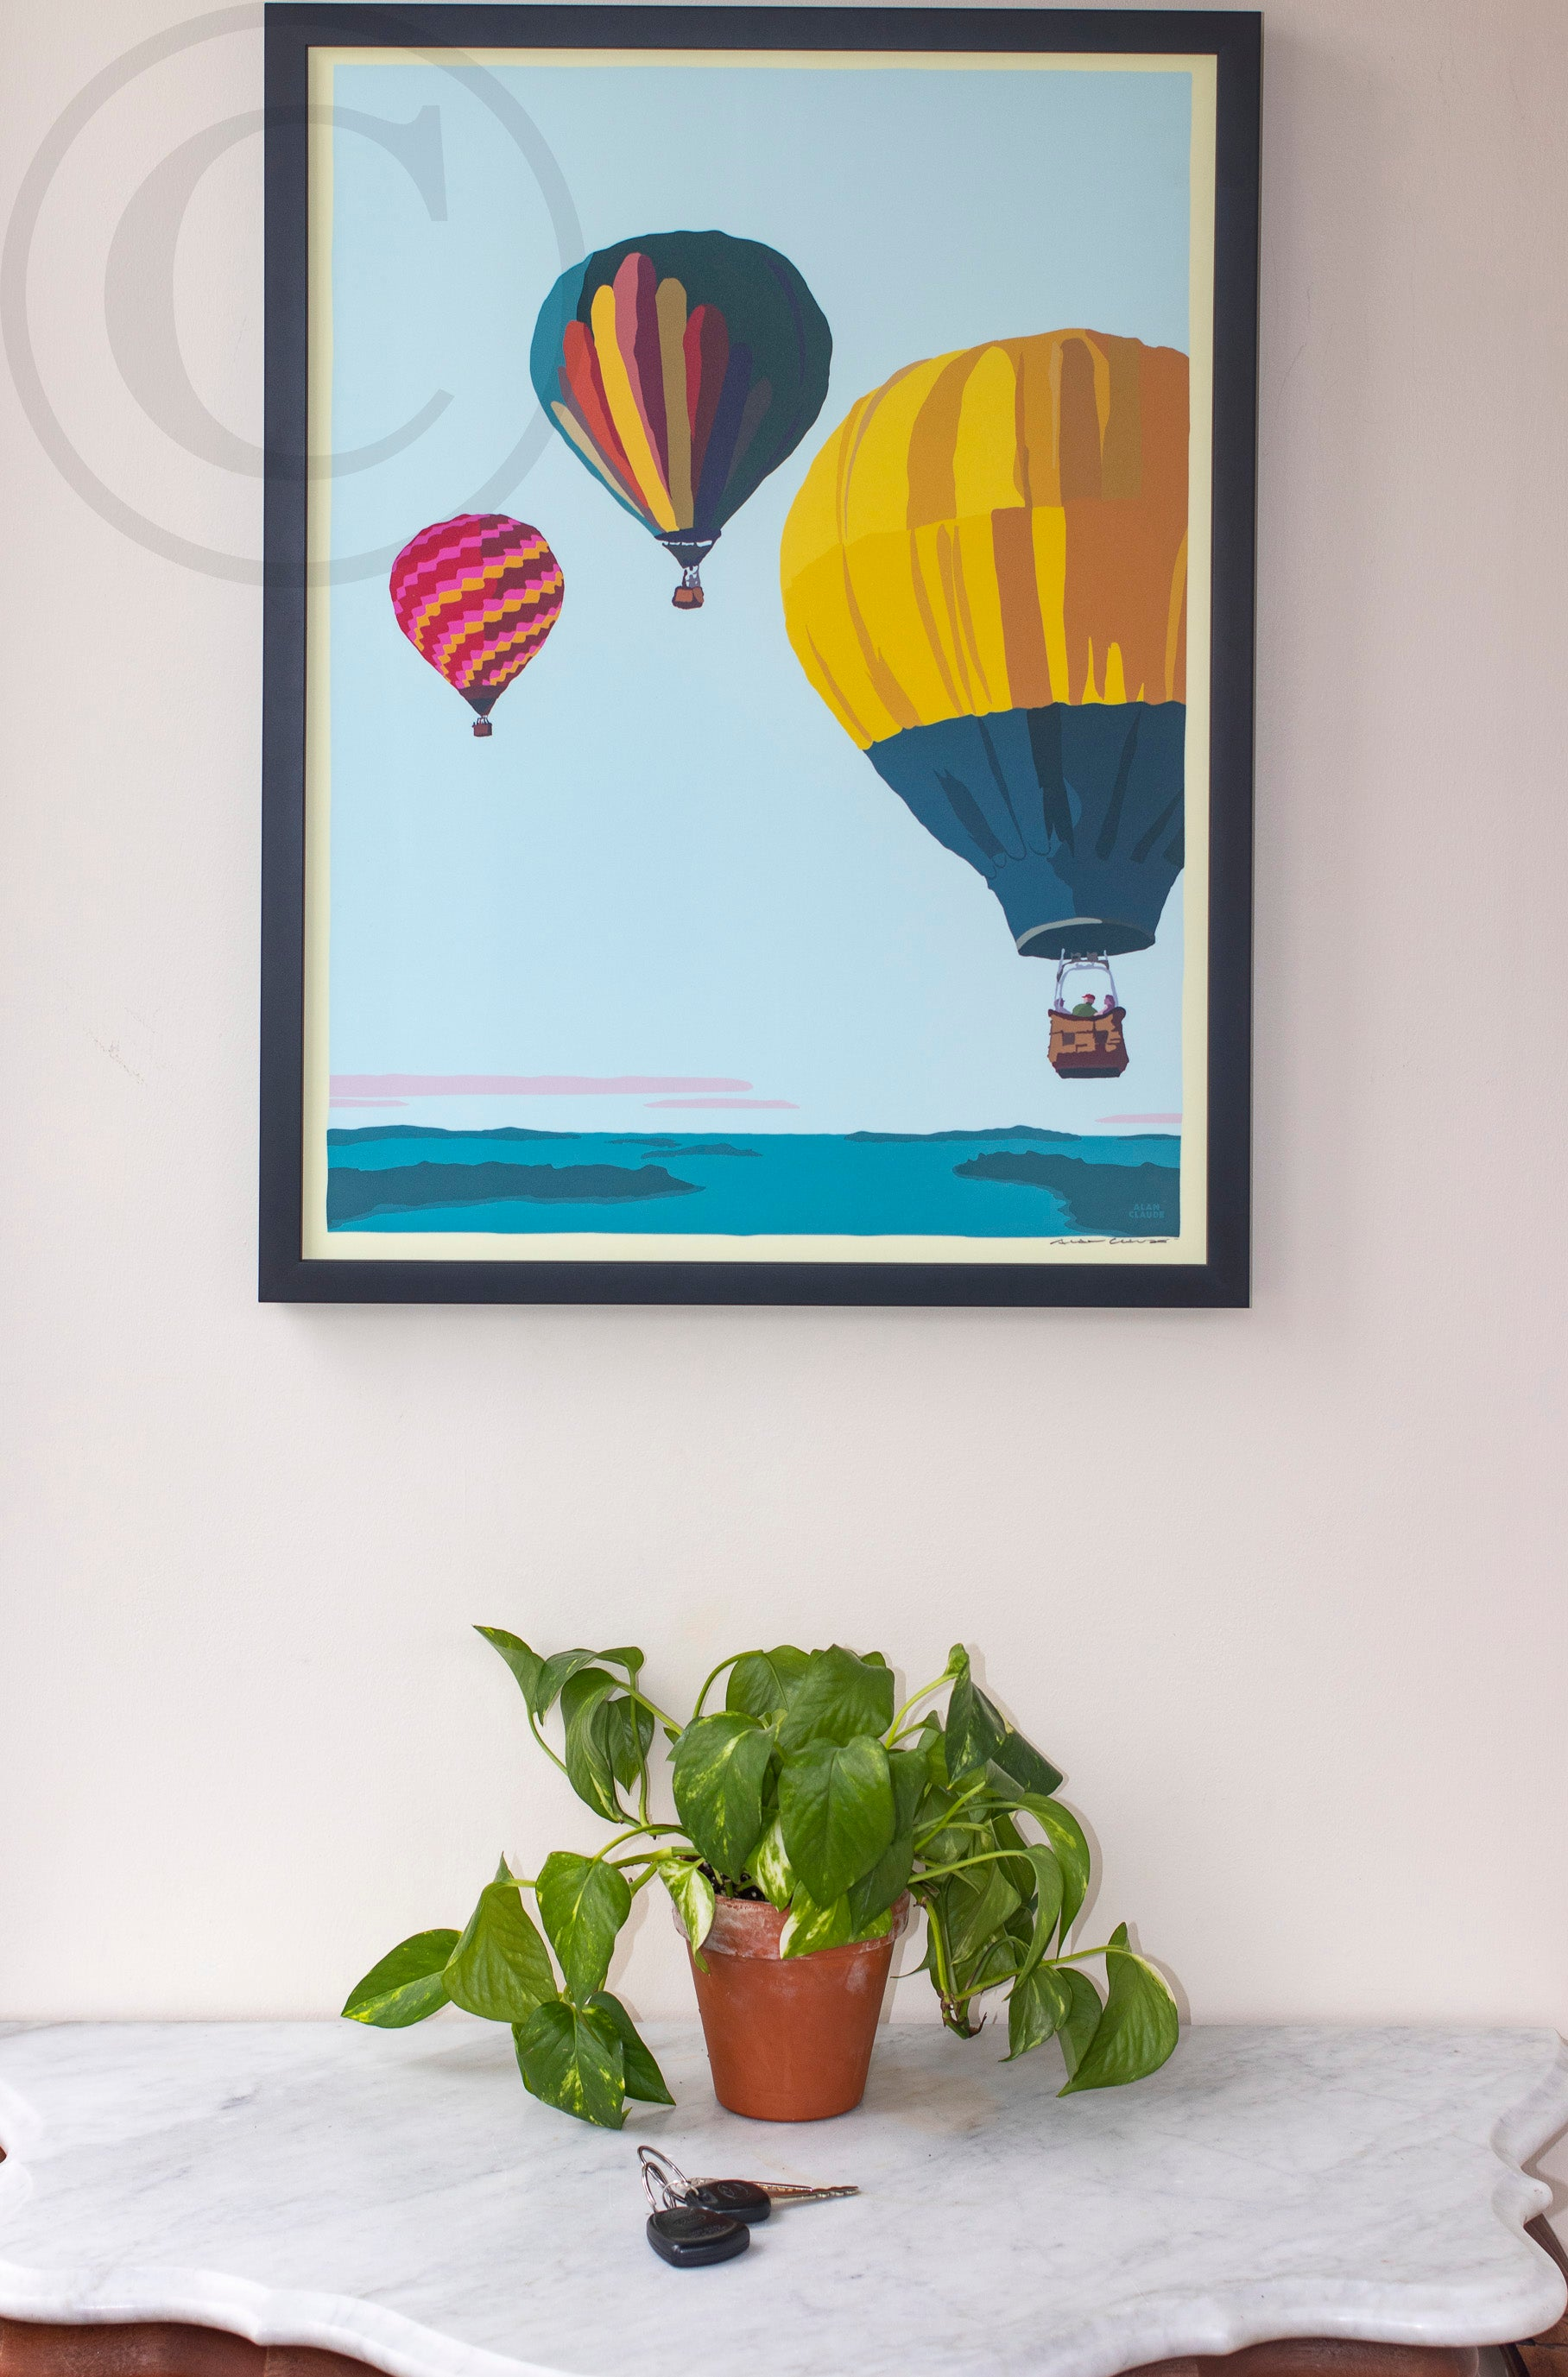 "Balloons Over Islands Art Print 18"" x 24"" Framed Wall Poster"